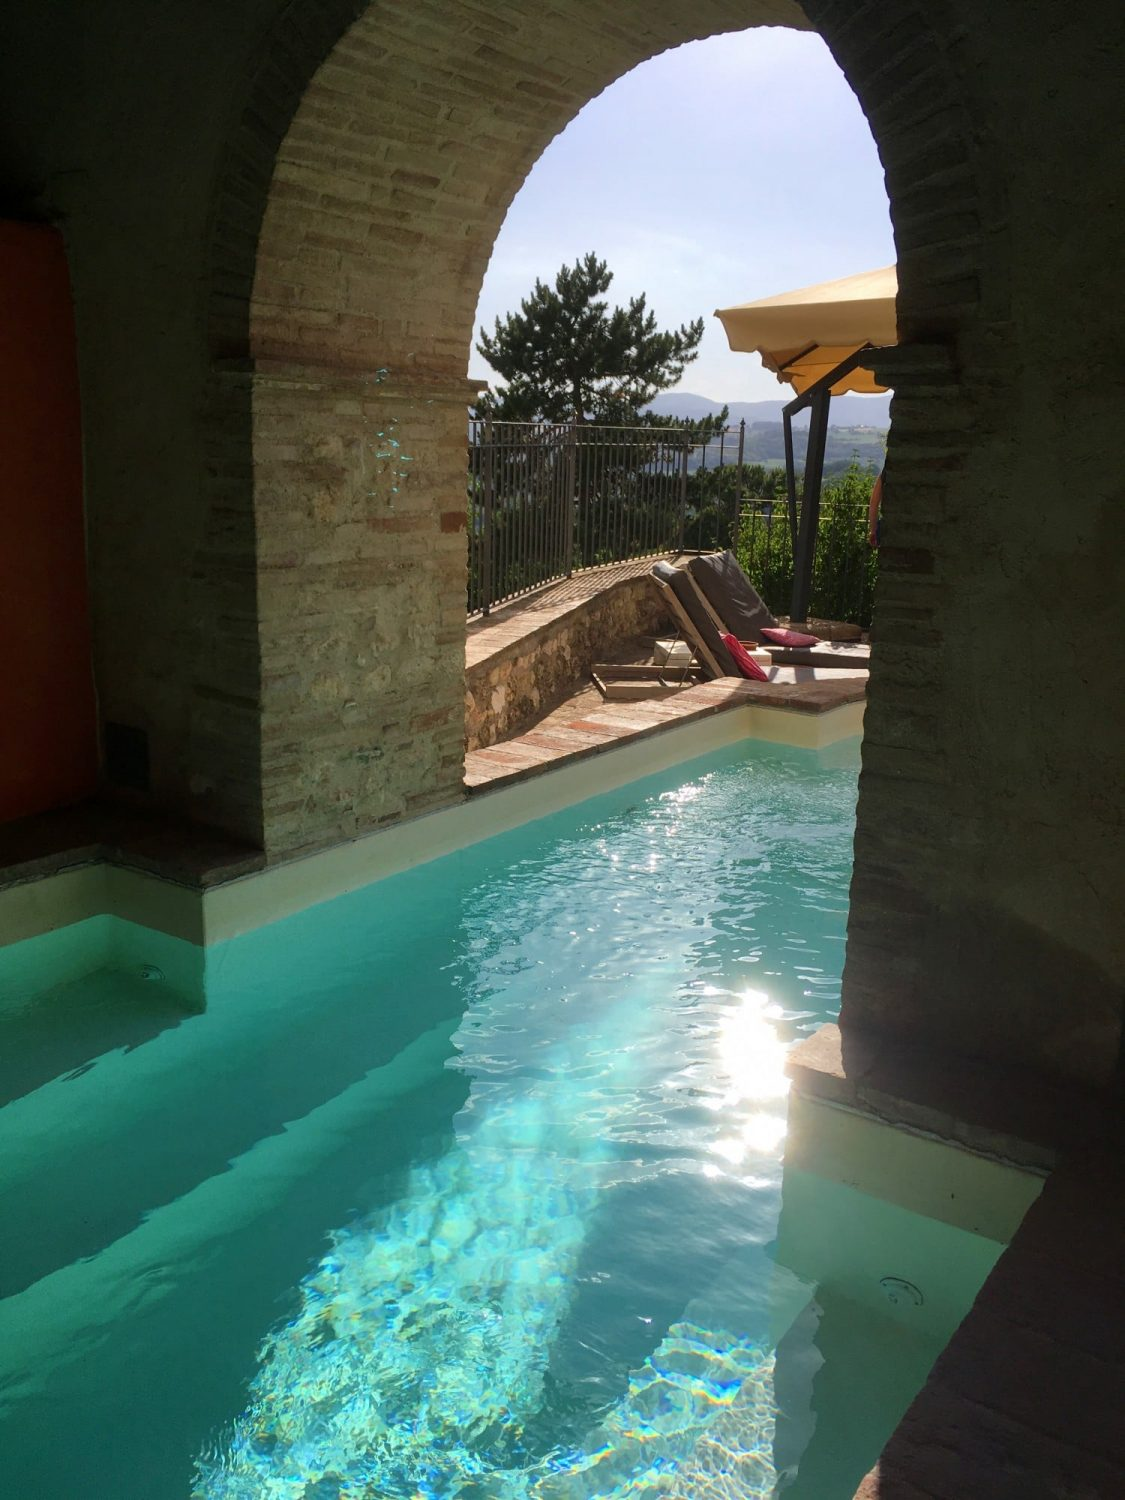 A pool with a view at Santi Terzi